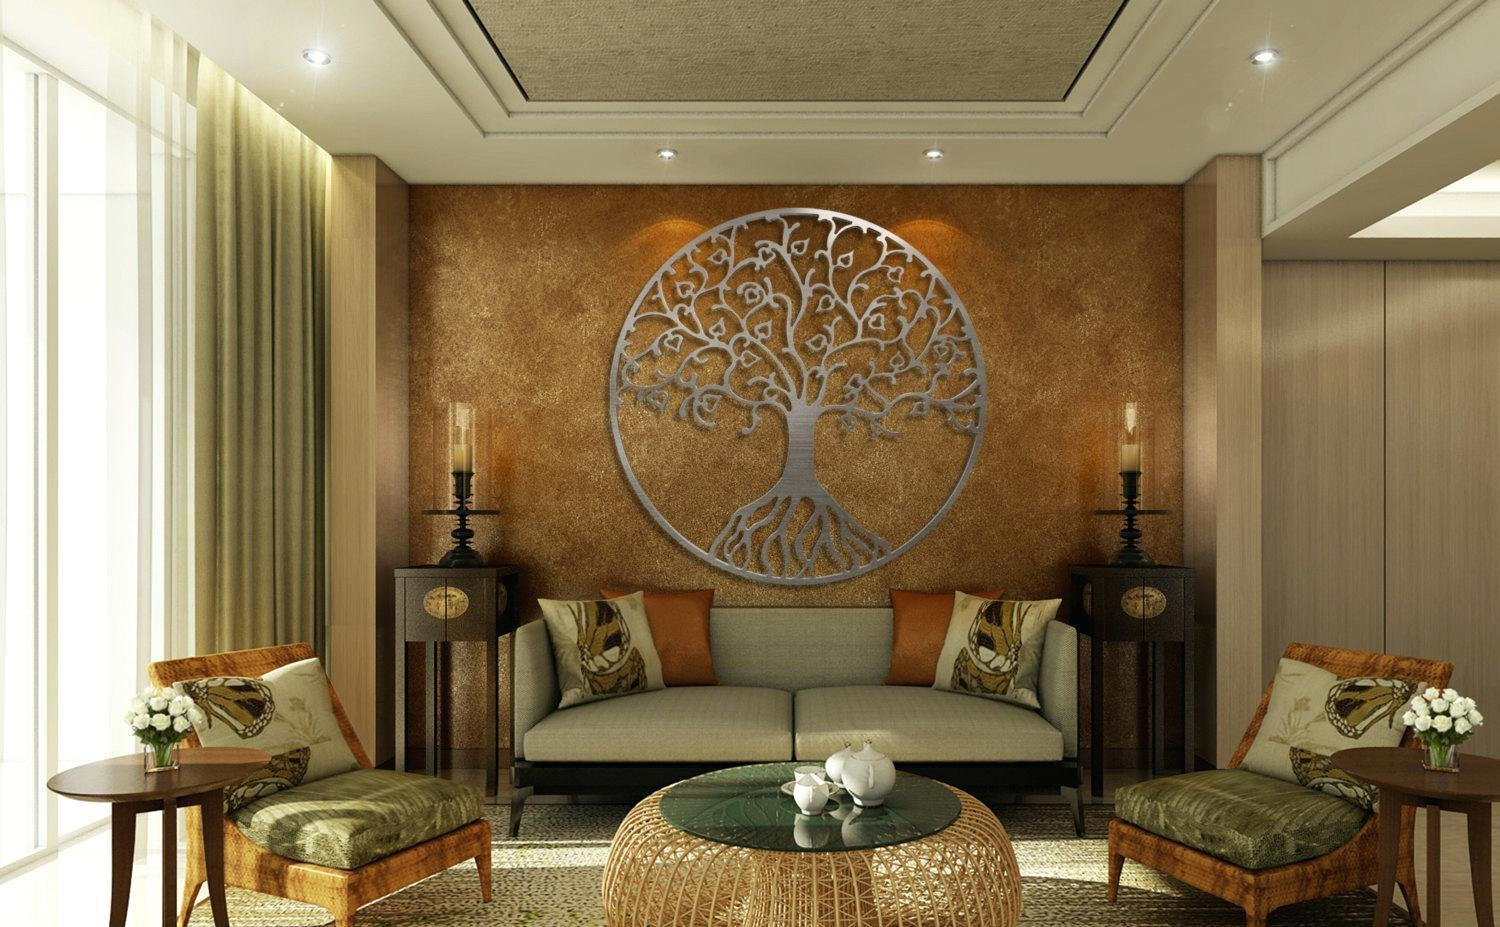 Wall Ideas : Sculpture Wall Decor Metal Sculpture Wall Art Trees Within Large Metal Wall Art Sculptures (View 7 of 20)